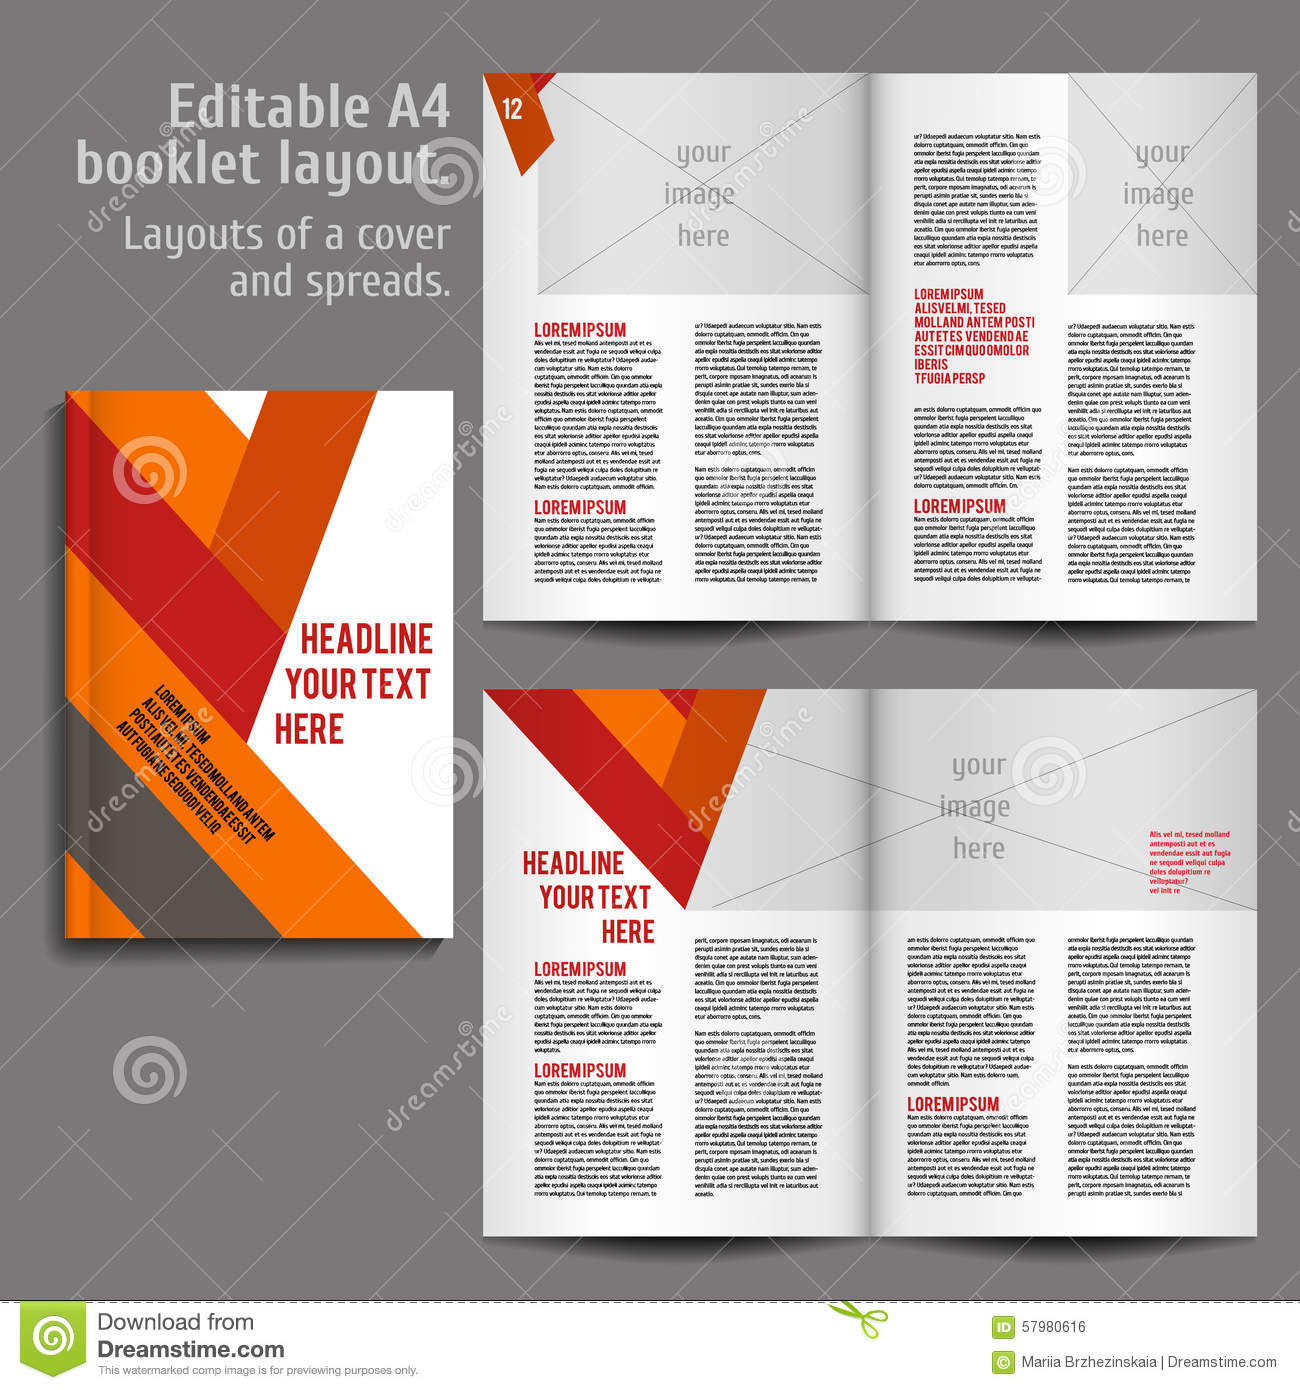 Book Cover Design Templates Free : A book layout design template stock vector illustration